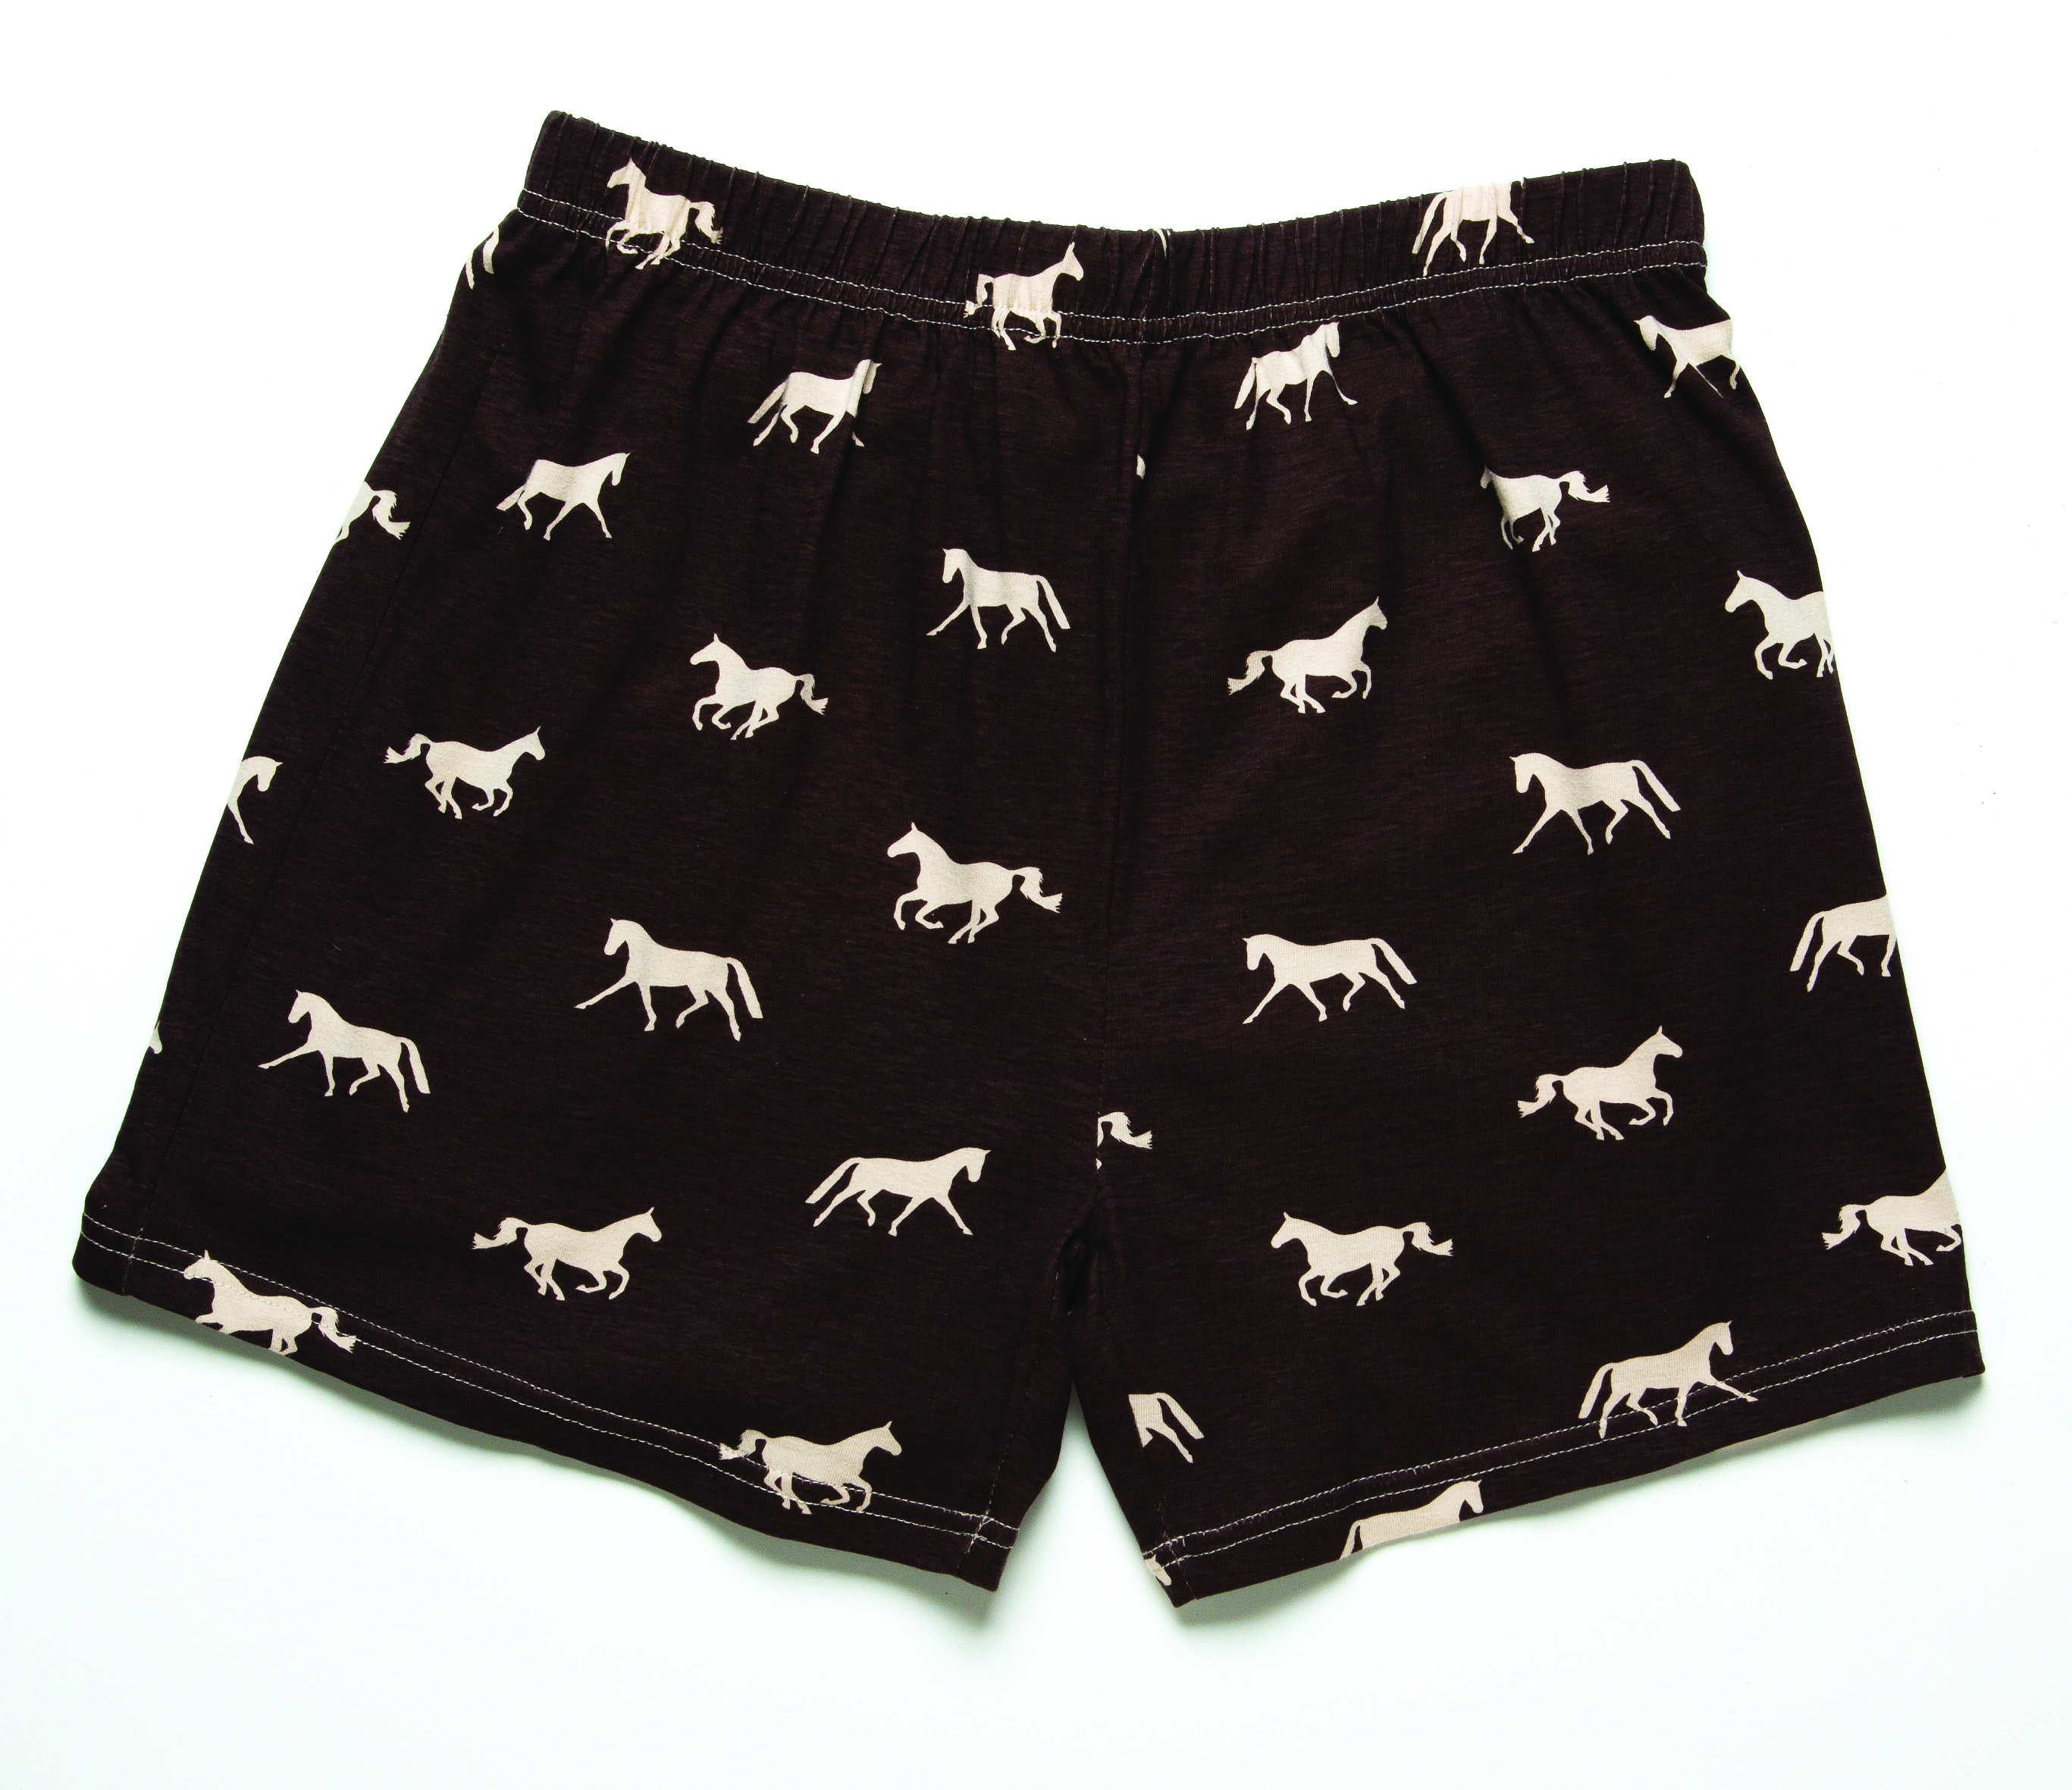 Horses N Chocolate Boxer Shorts